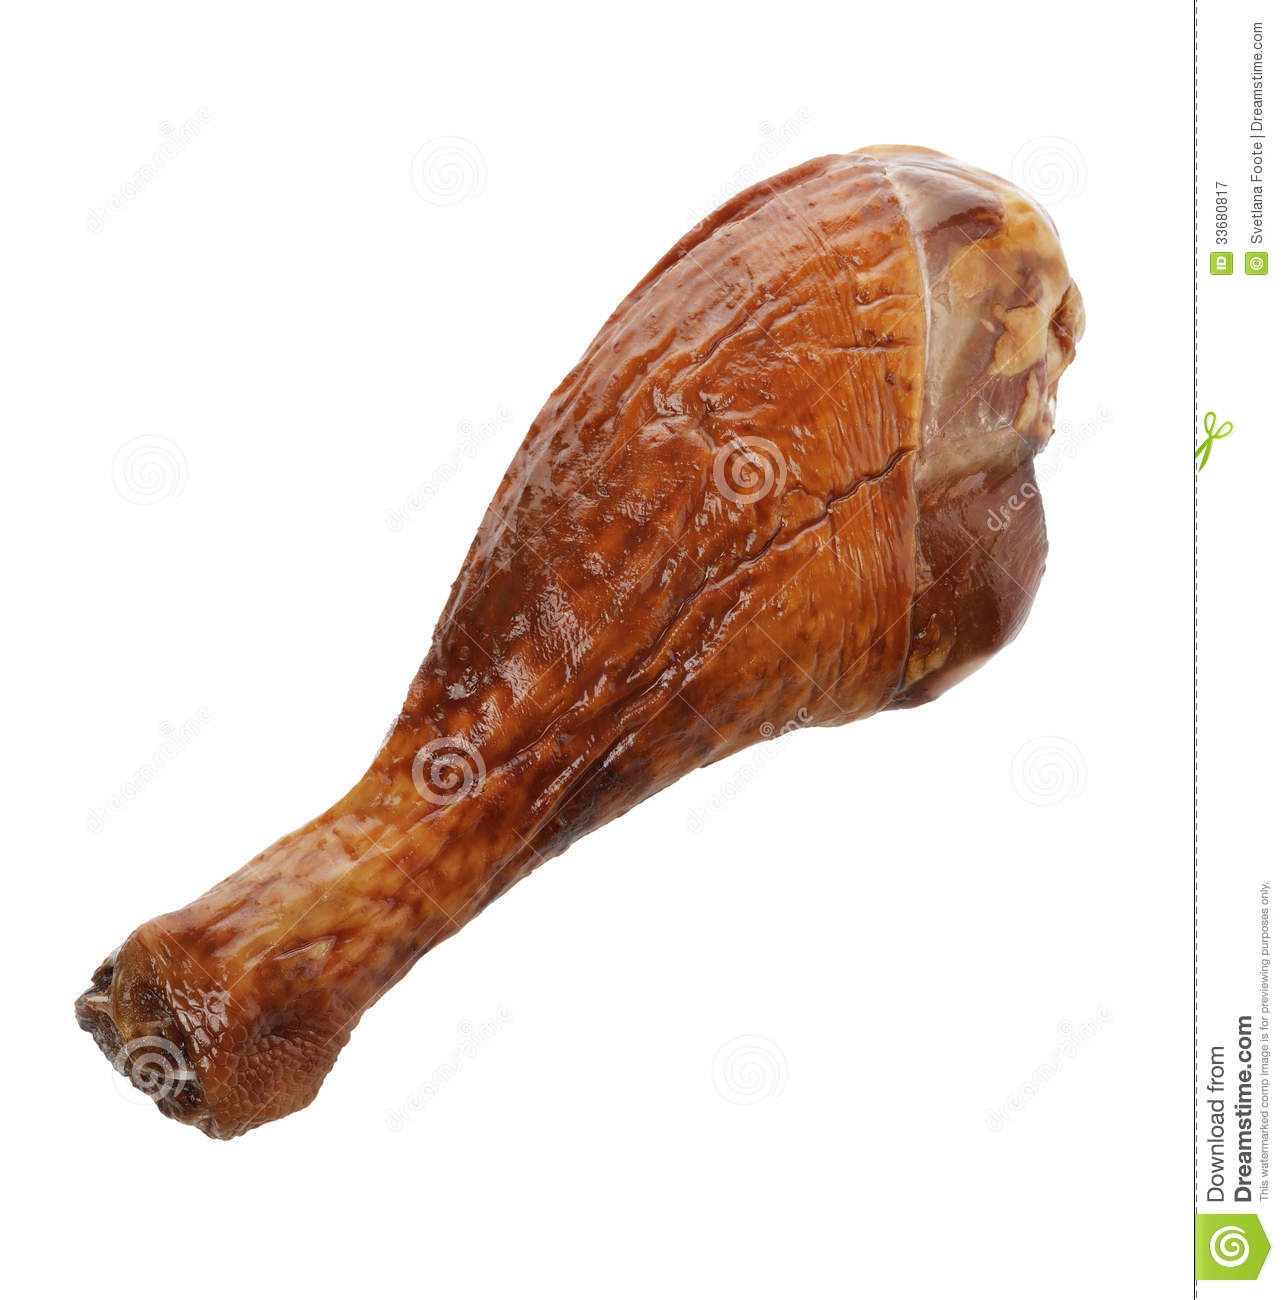 Turkey Drumstick Royalty Free Stock Photography - Image: 33680817